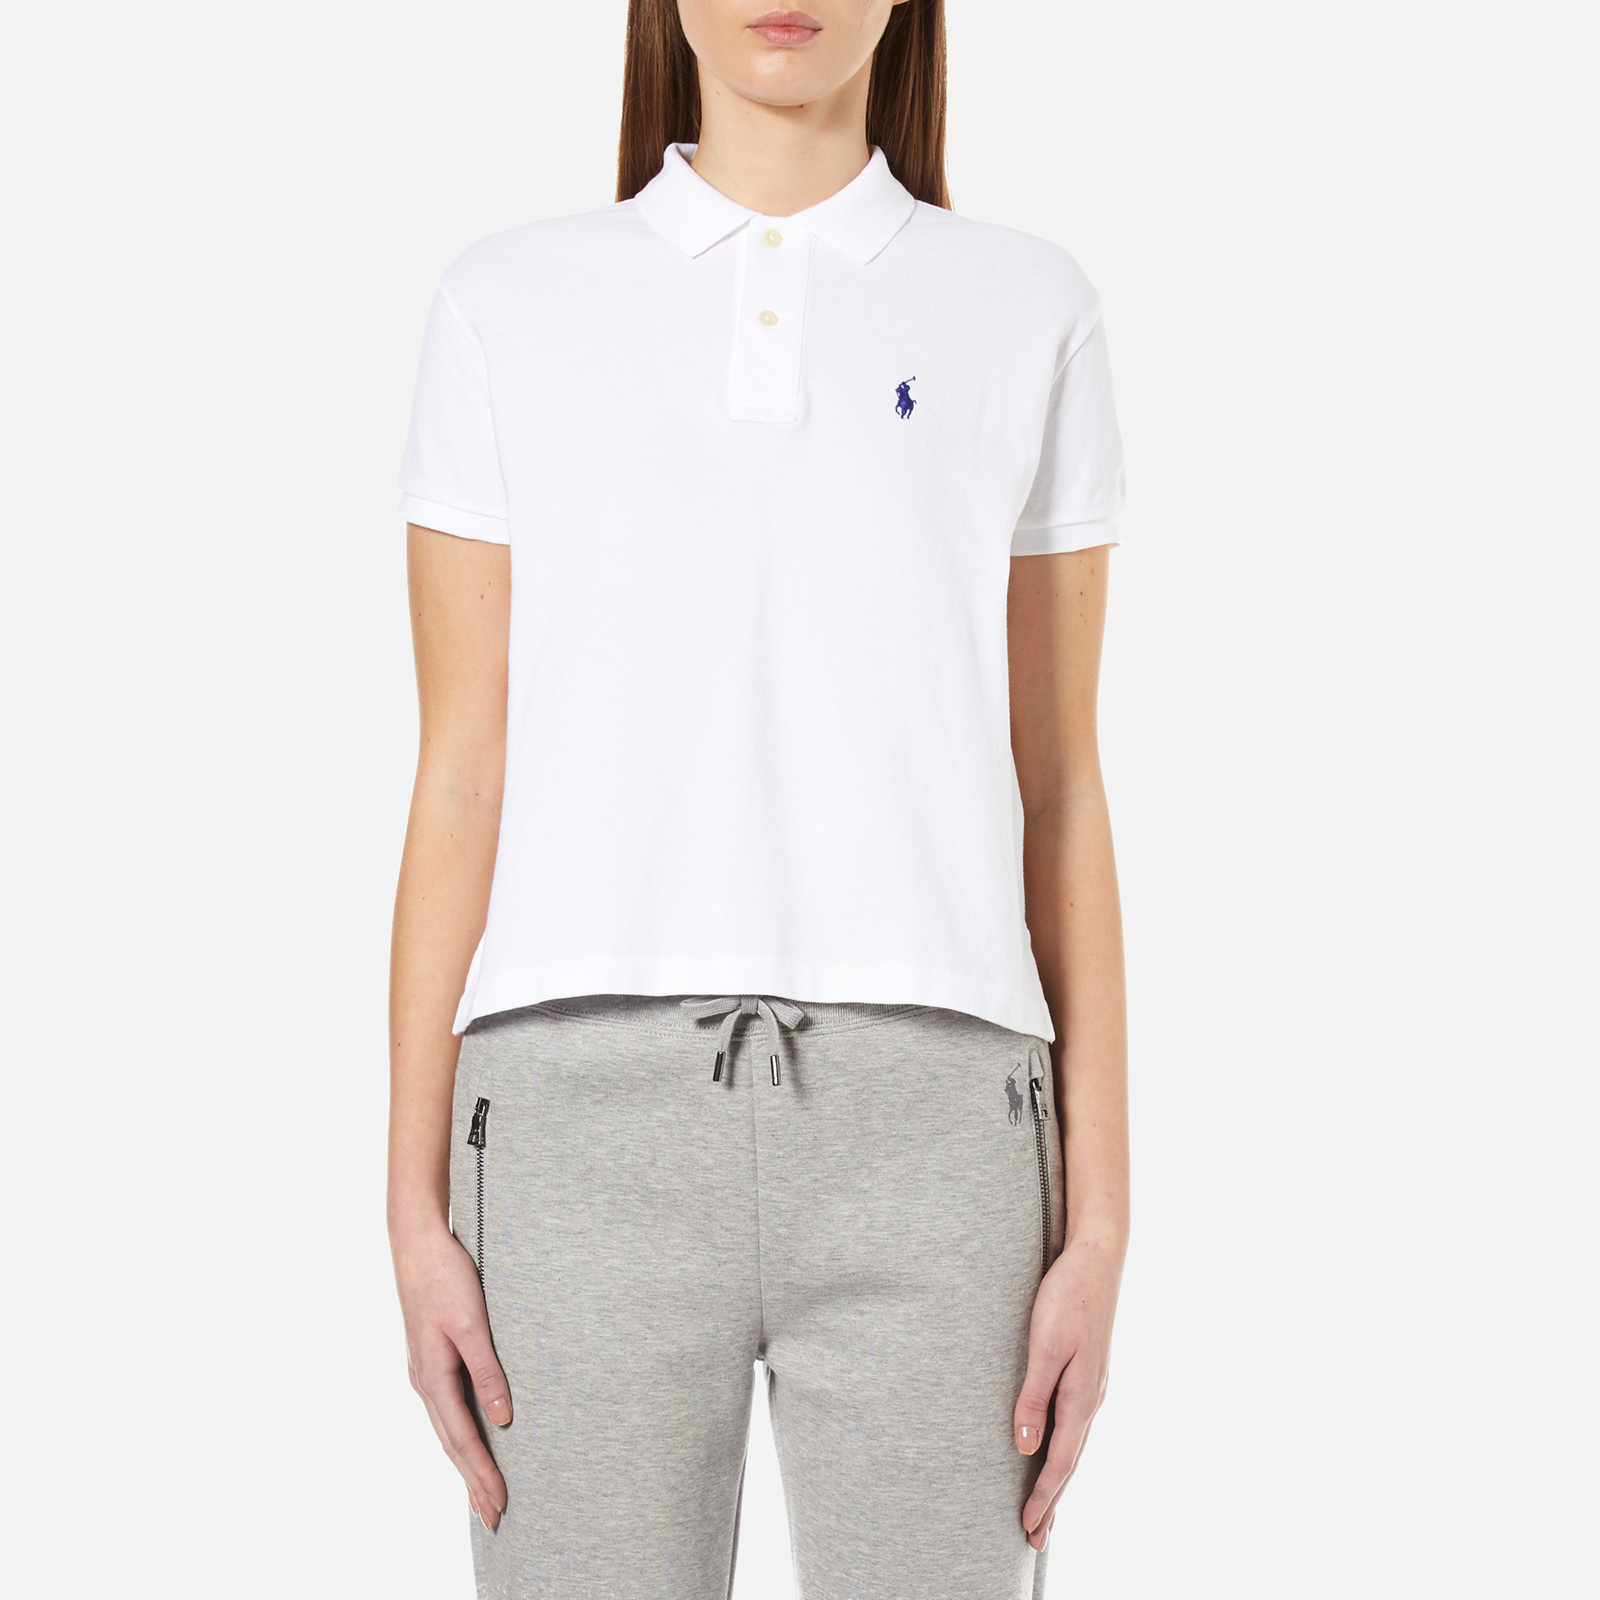 aef8a1370e2b8e Polo Ralph Lauren Women s Short Sleeve Crop Polo Shirt - White - Free UK  Delivery over £50